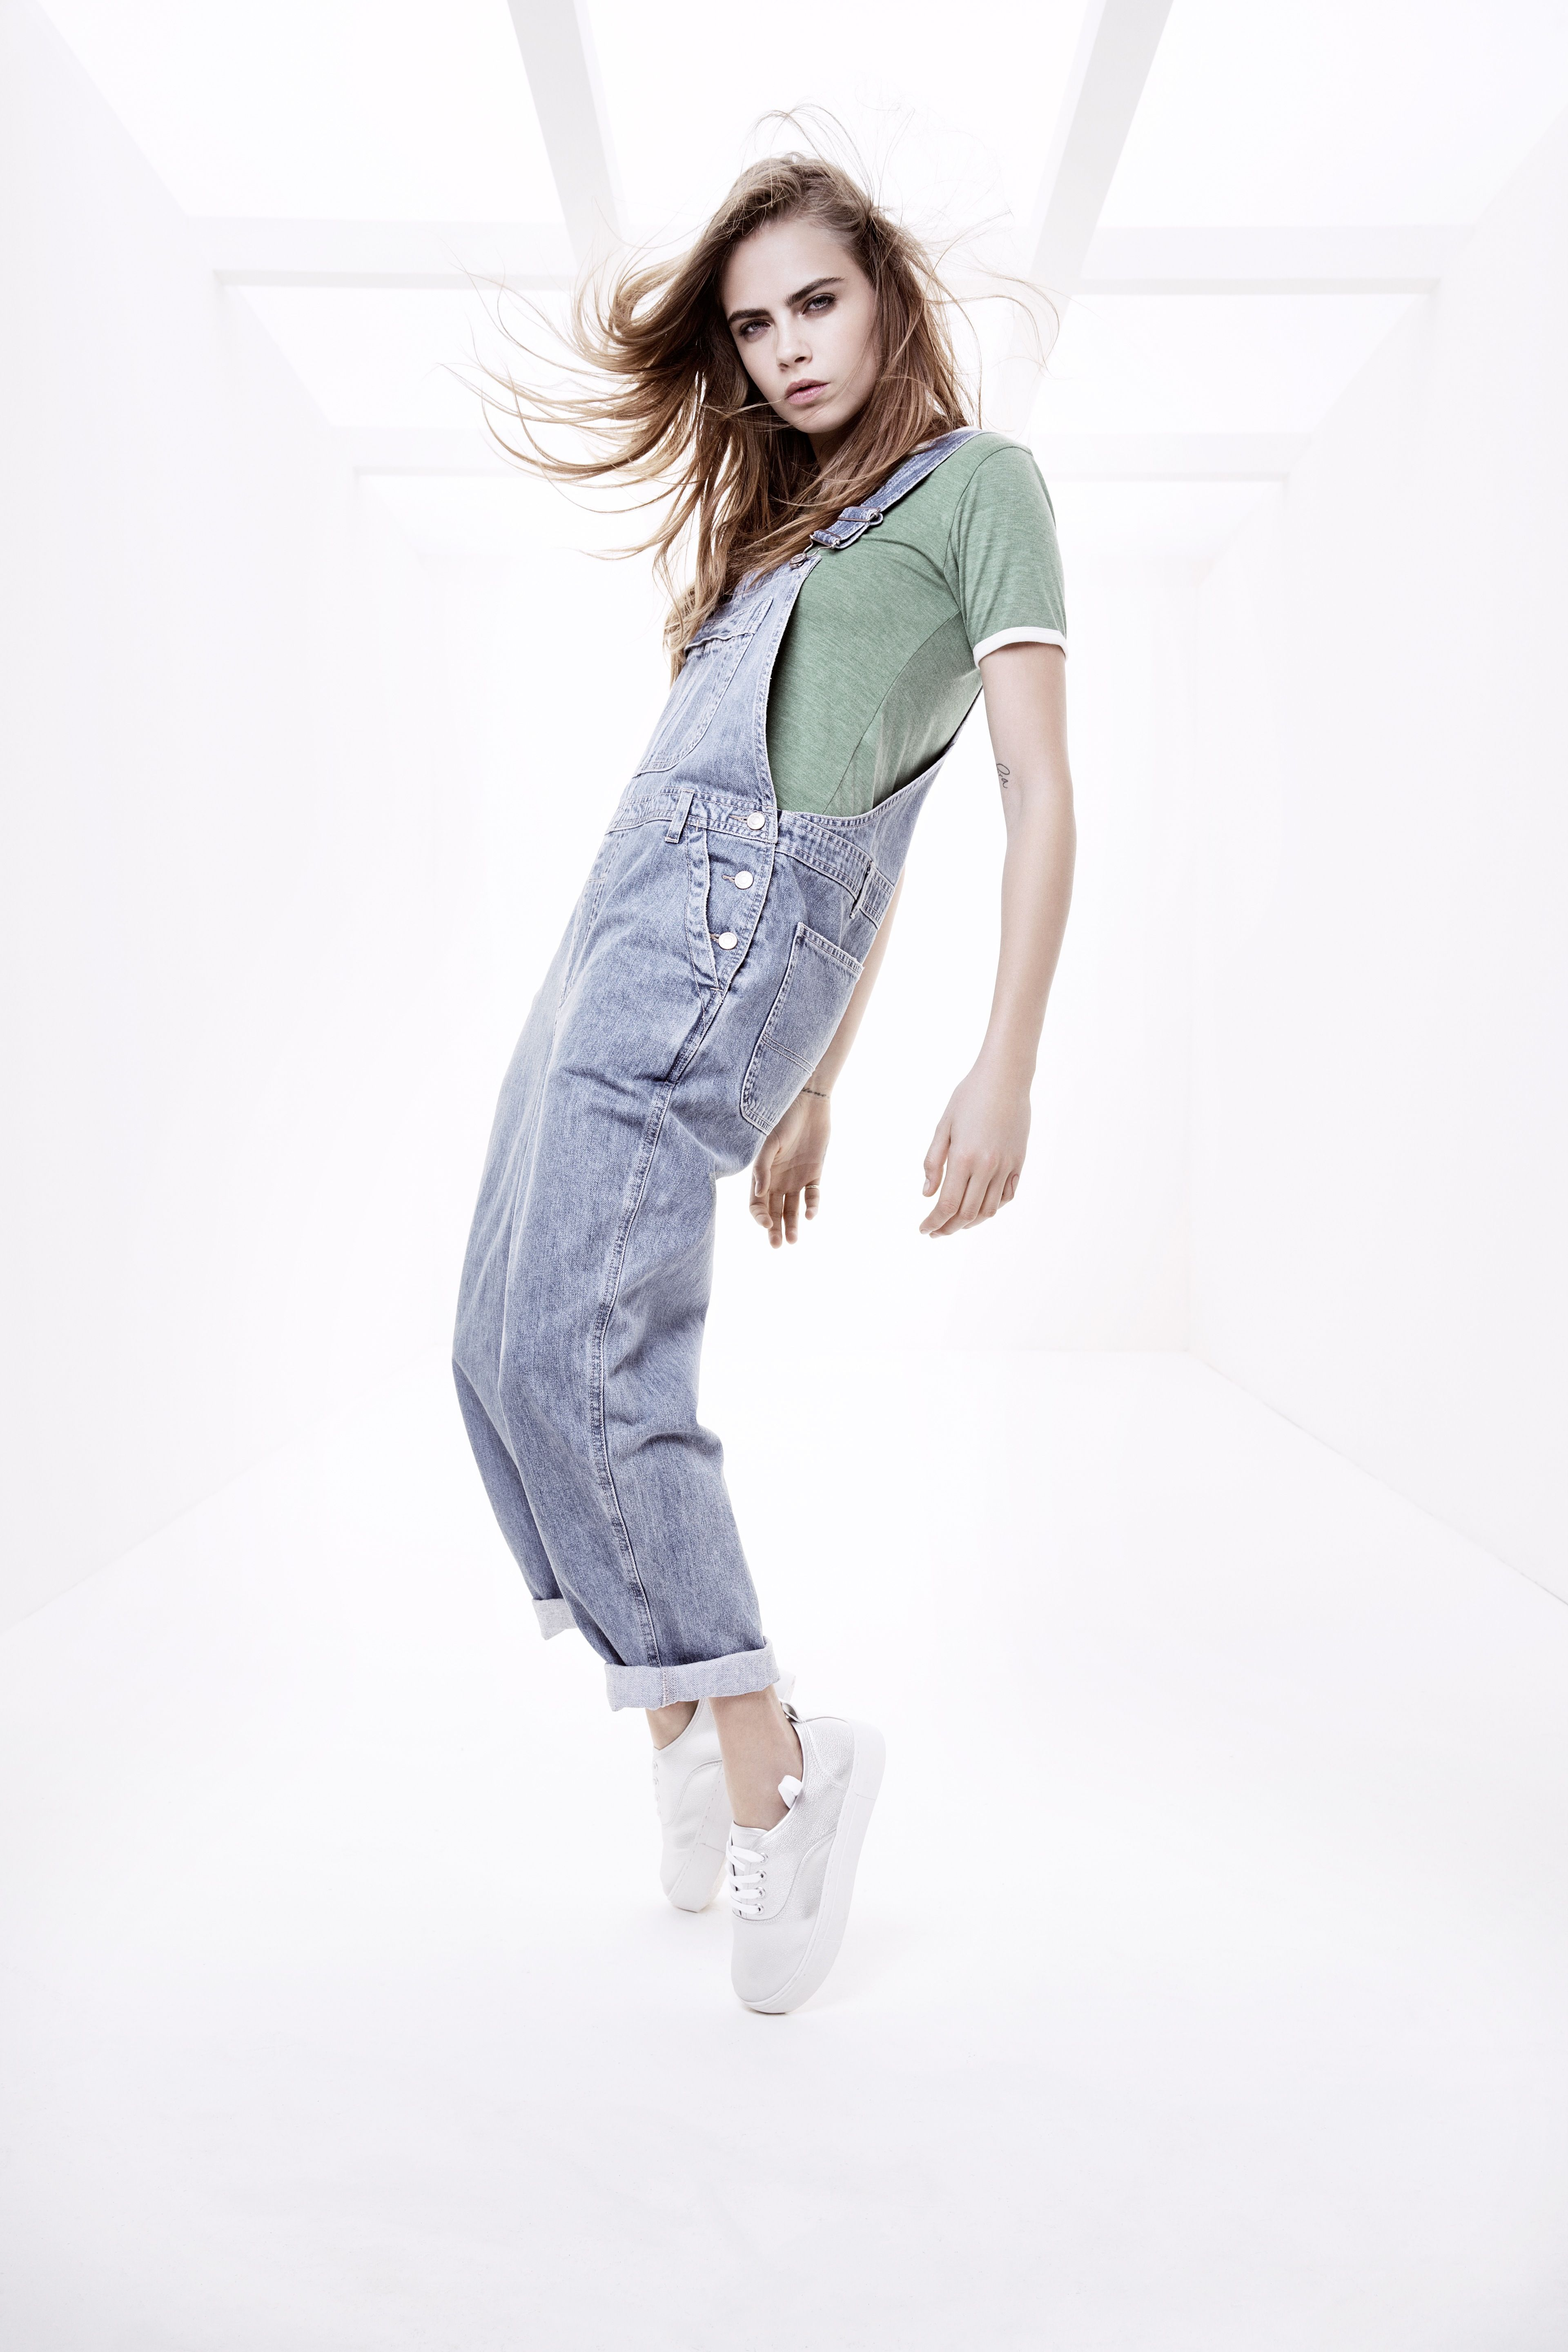 Shop Topshop  WhereverYouAre at Zalando – with exclusive videos from Cara  Delevingne. 8d085cde25f1